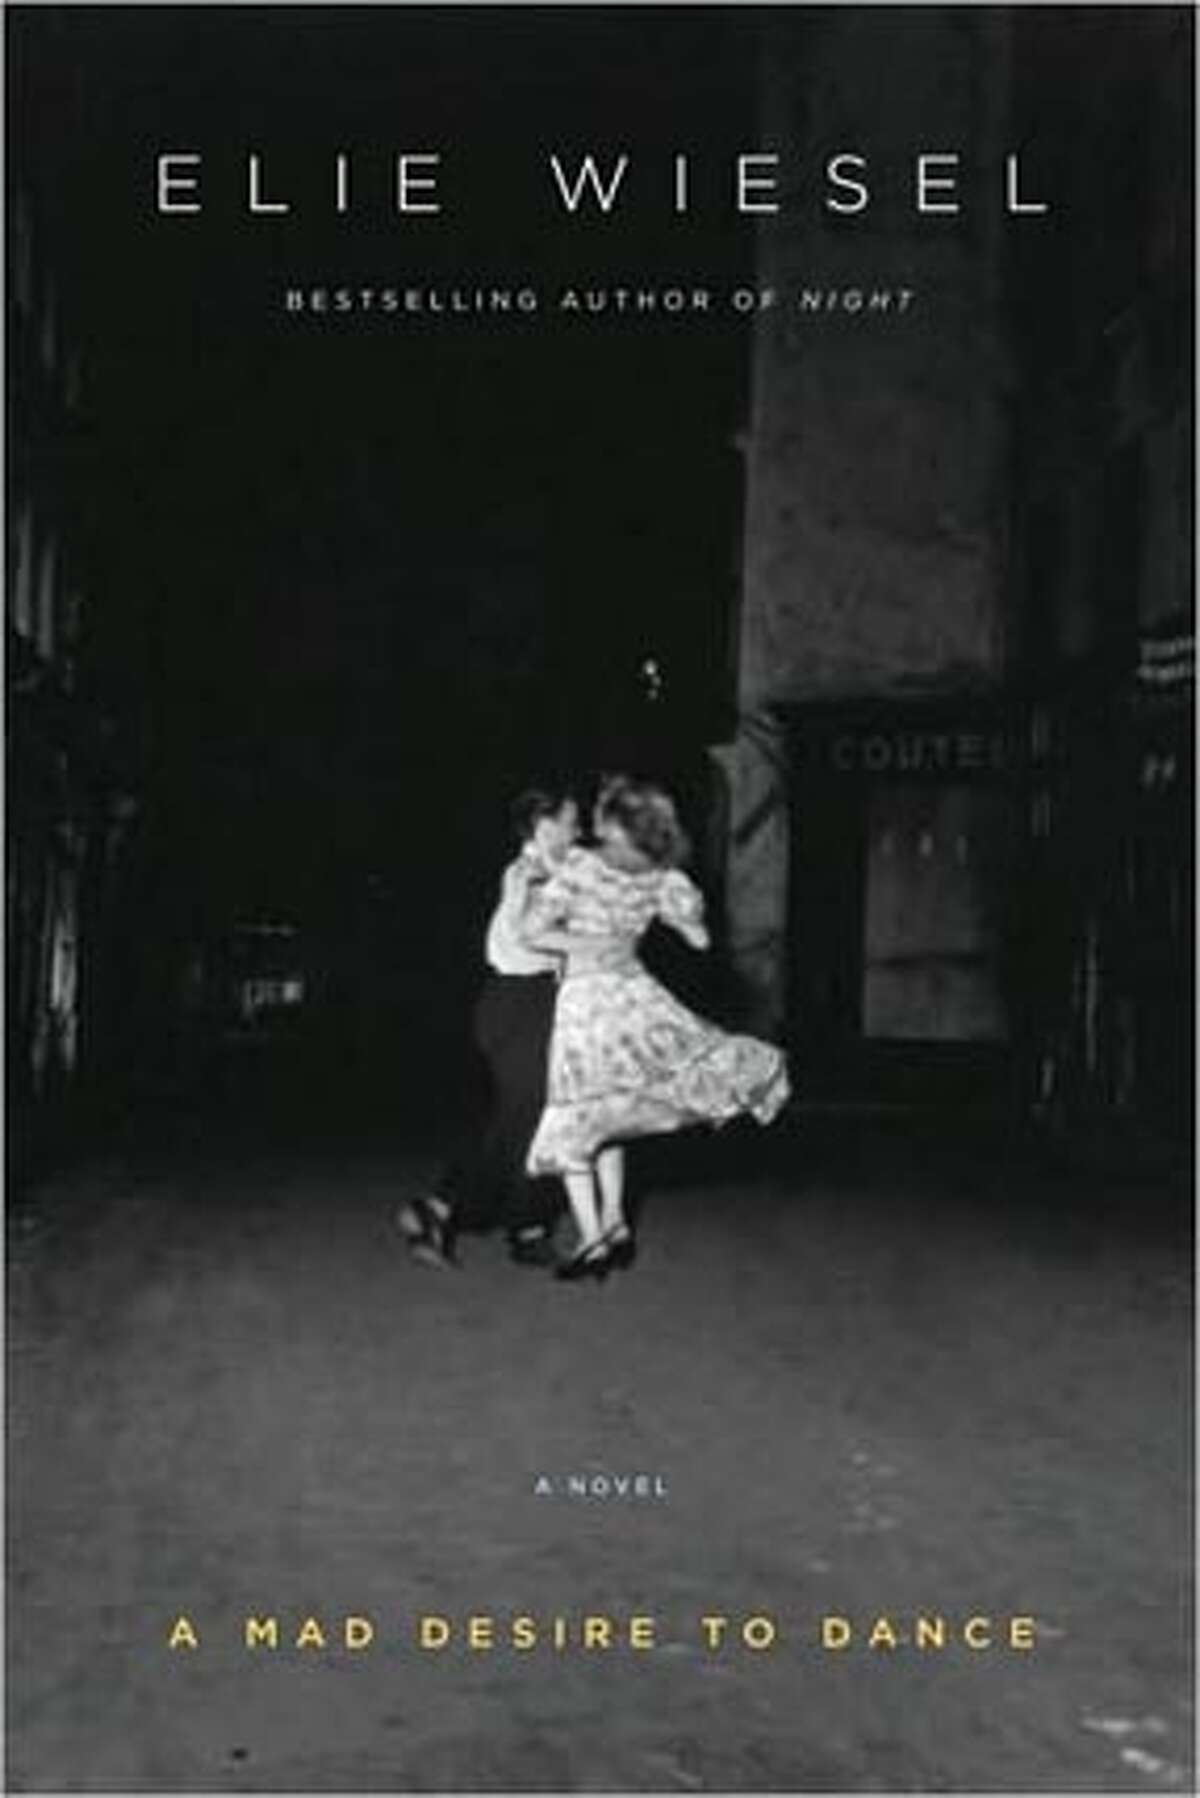 'A Mad Desire to Dance,' by Elie Wiesel